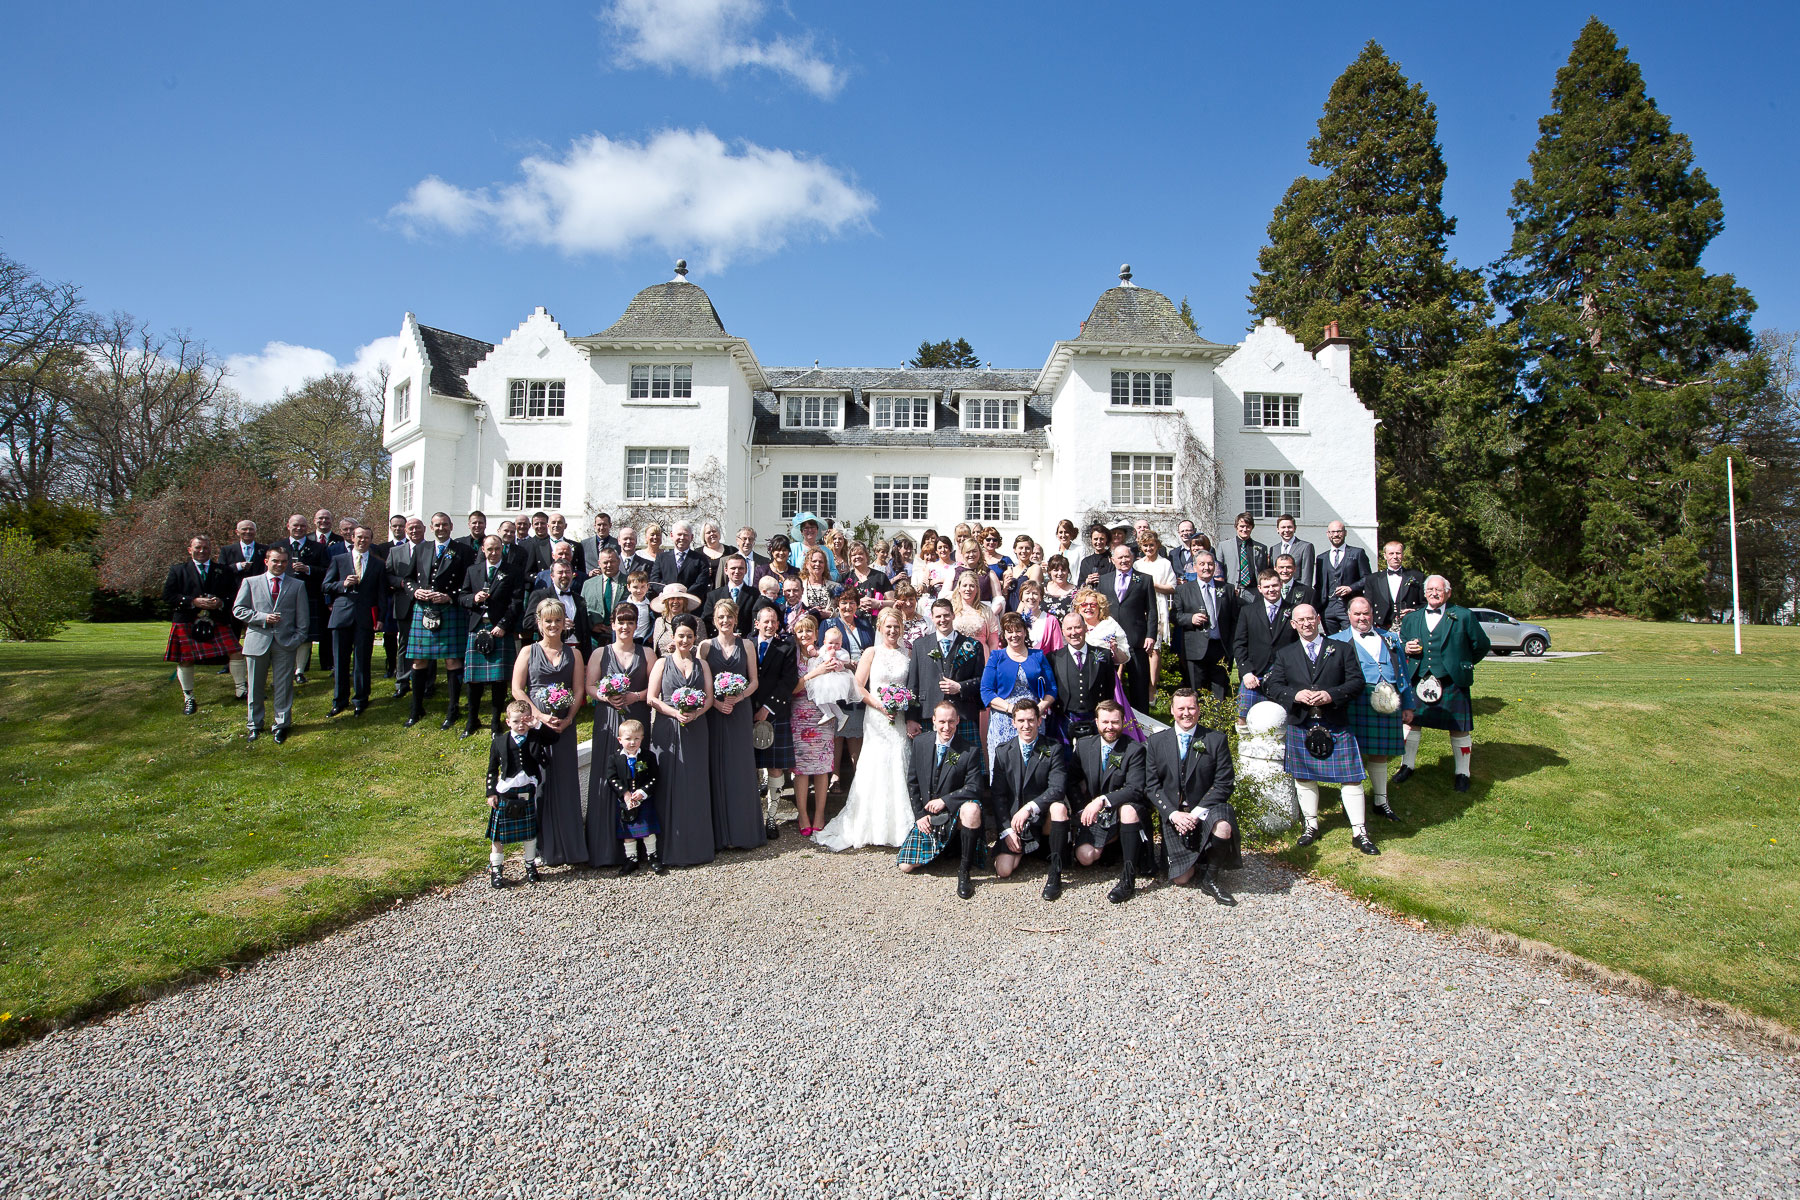 achnagairn-castle-wedding-inverness-3